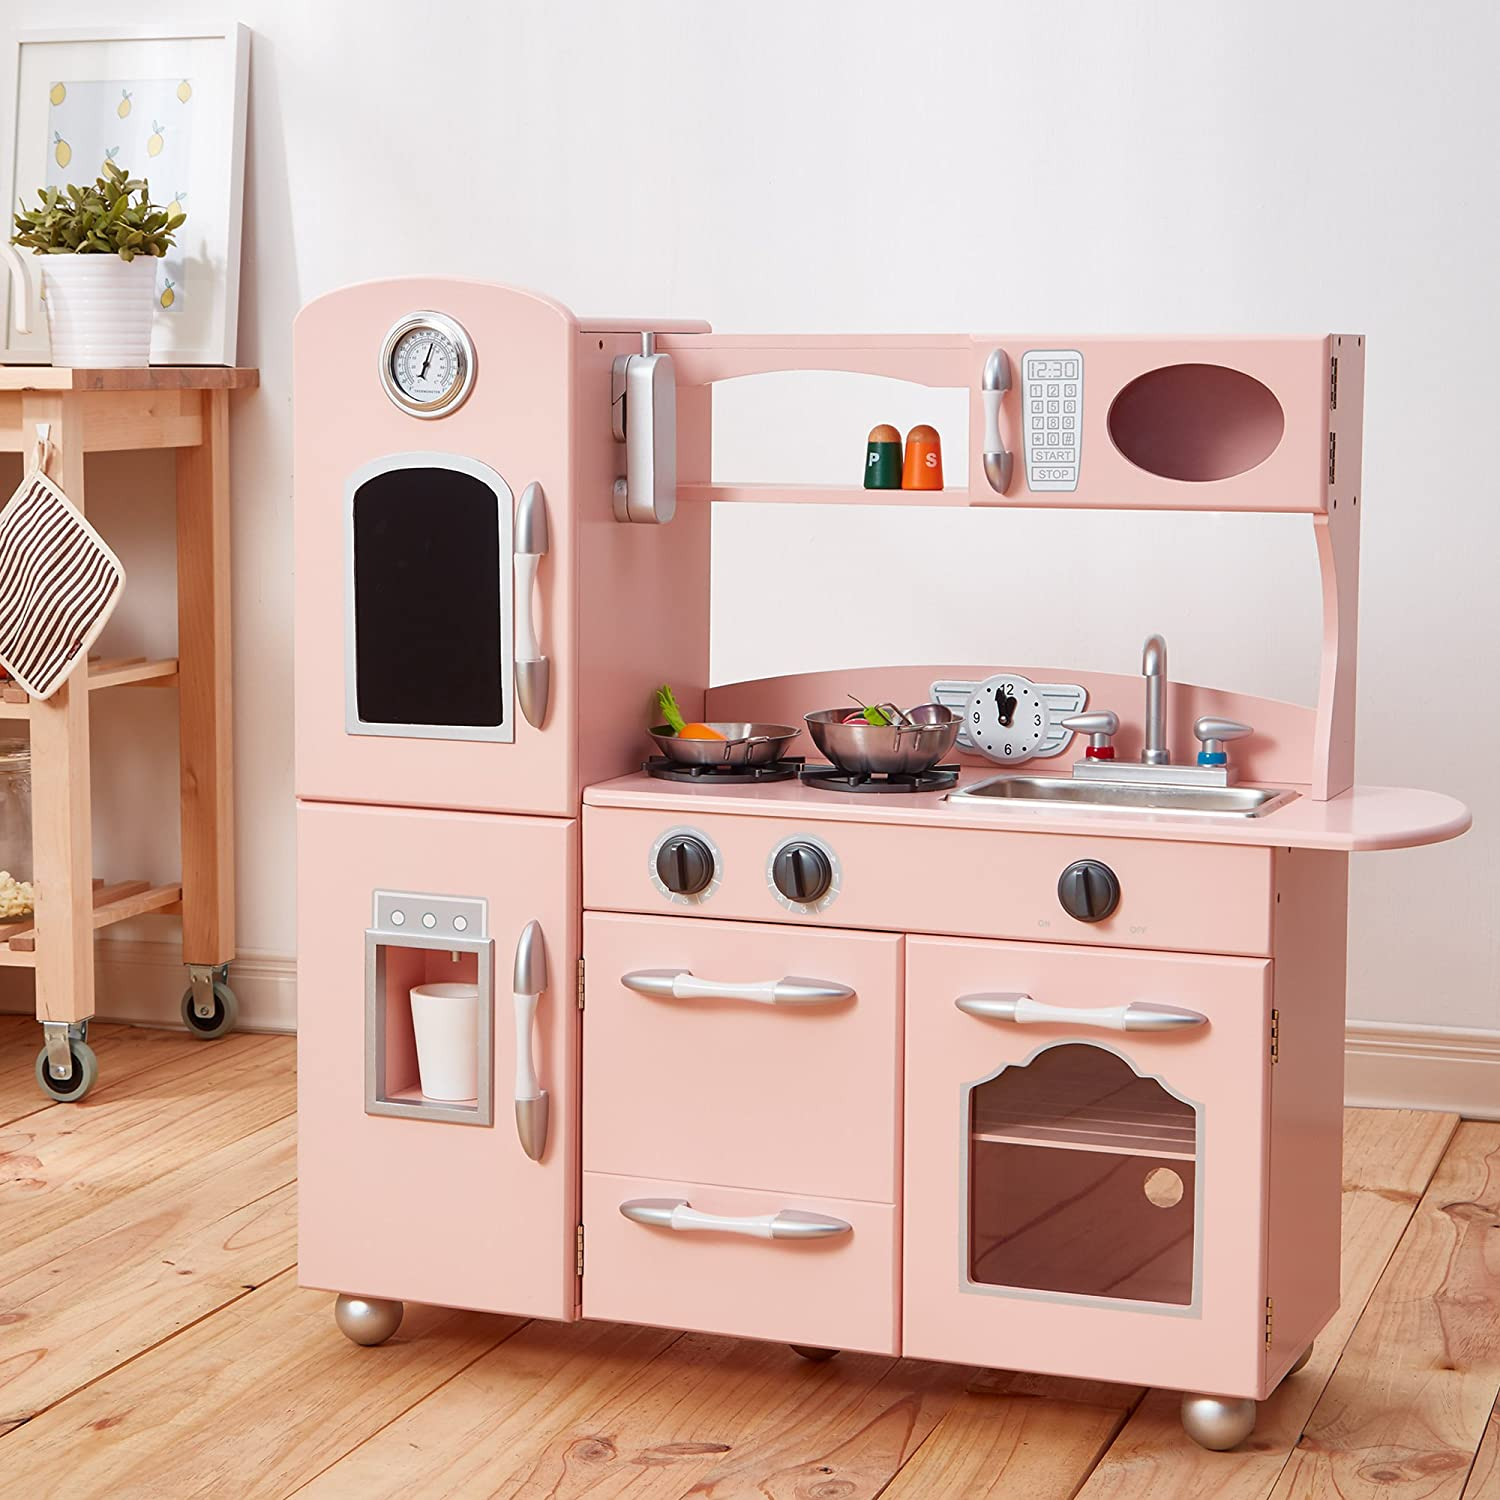 Teamson Kids - Retro Wooden Play Kitchen with Refrigerator, Freezer, Oven and Dishwasher - Pink (1 Pieces)